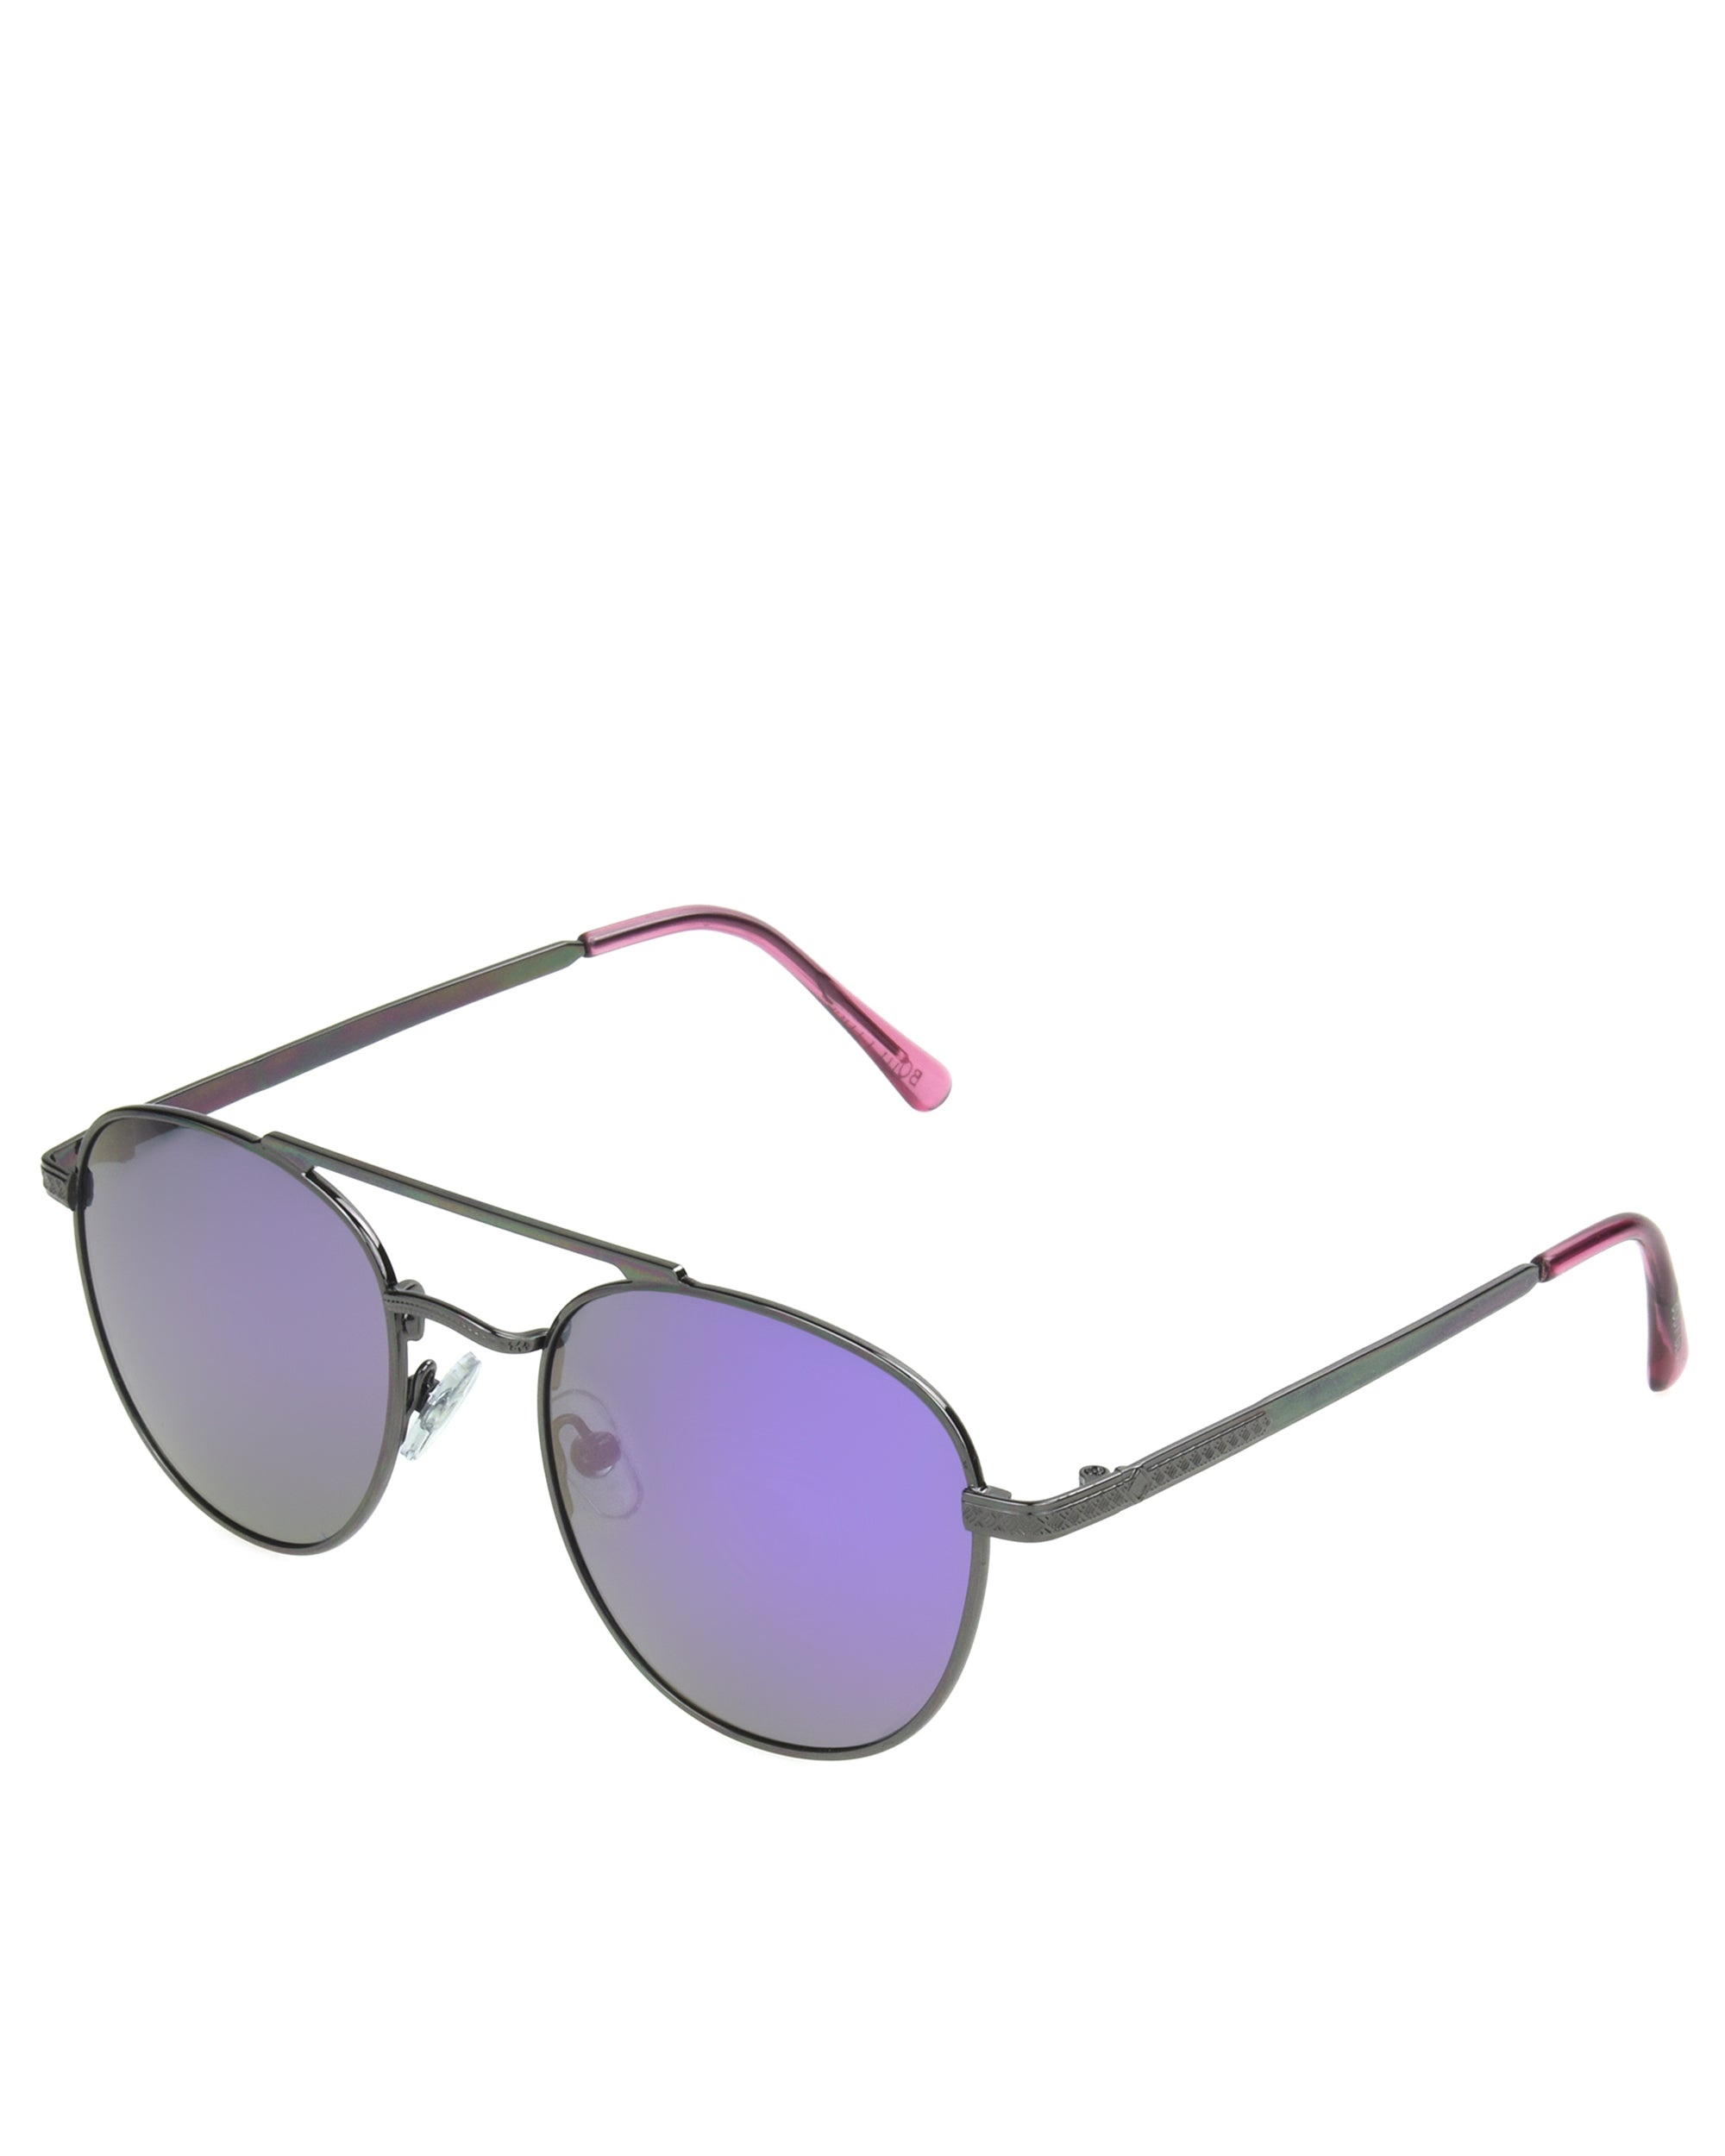 Women's BGL1915 Polarized Aviator Sunglasses - Gun Metal